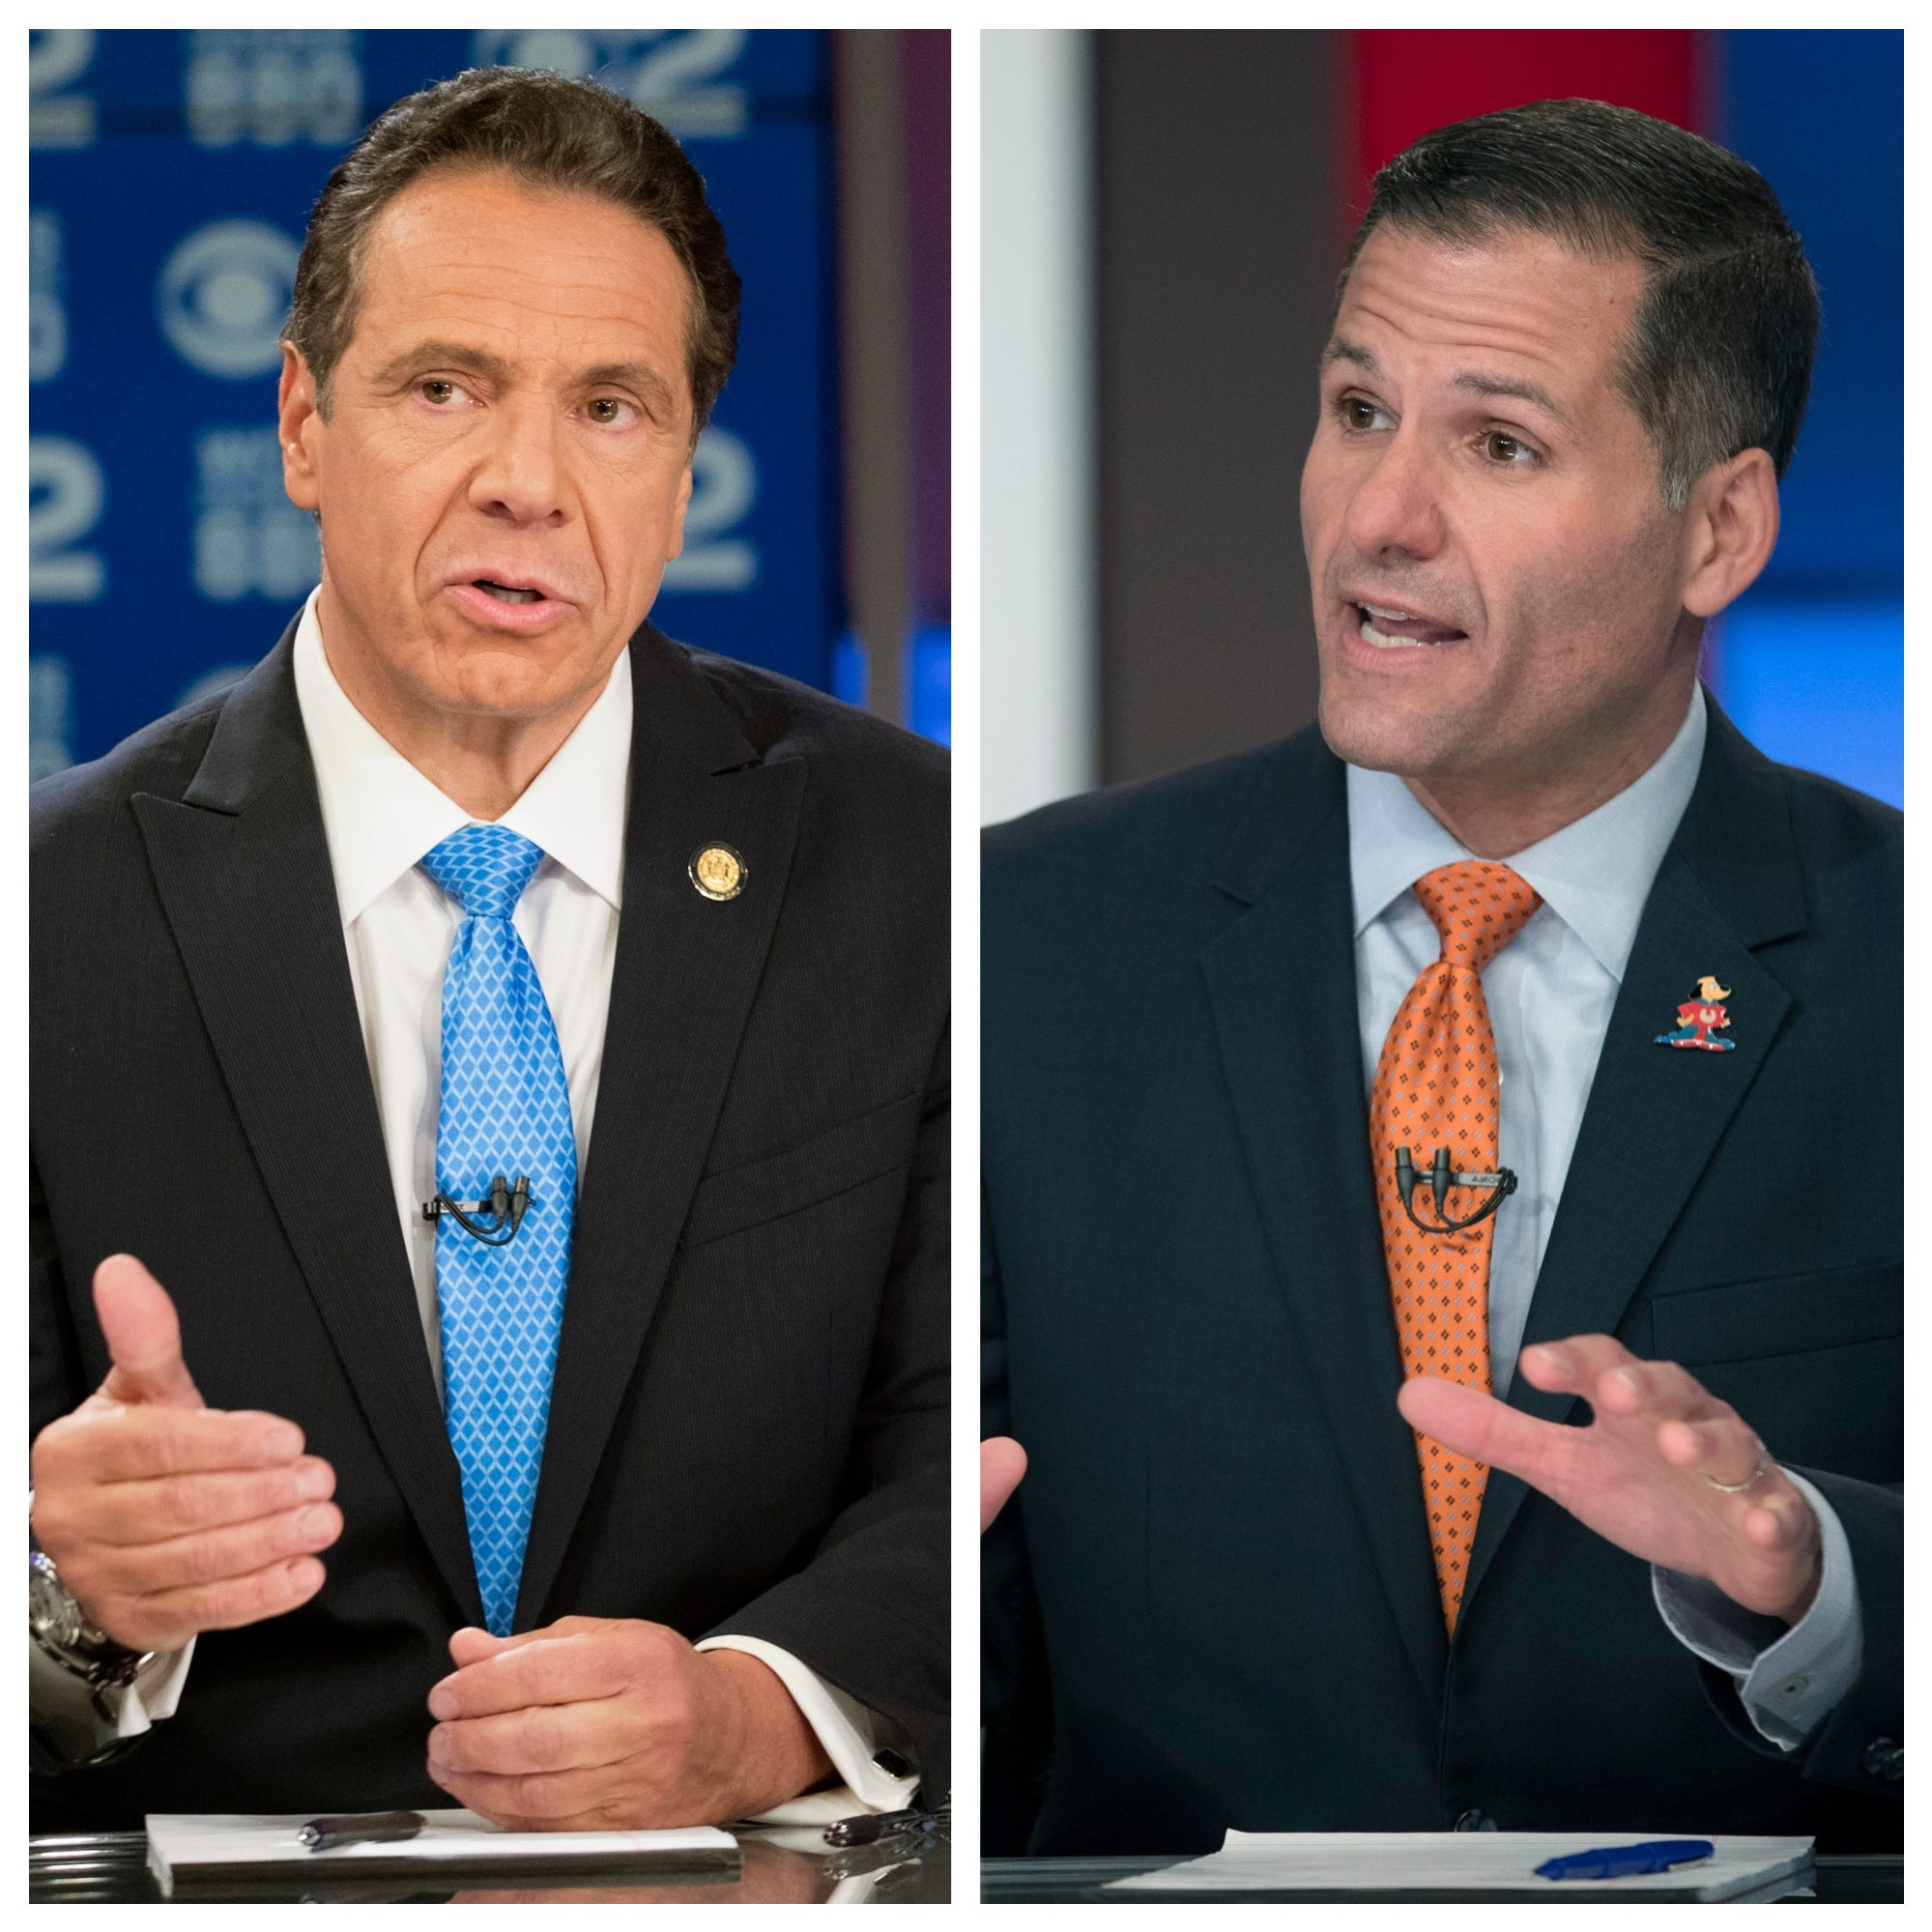 Andrew Cuomo, Marc Molinaro trade barbs in heated debate